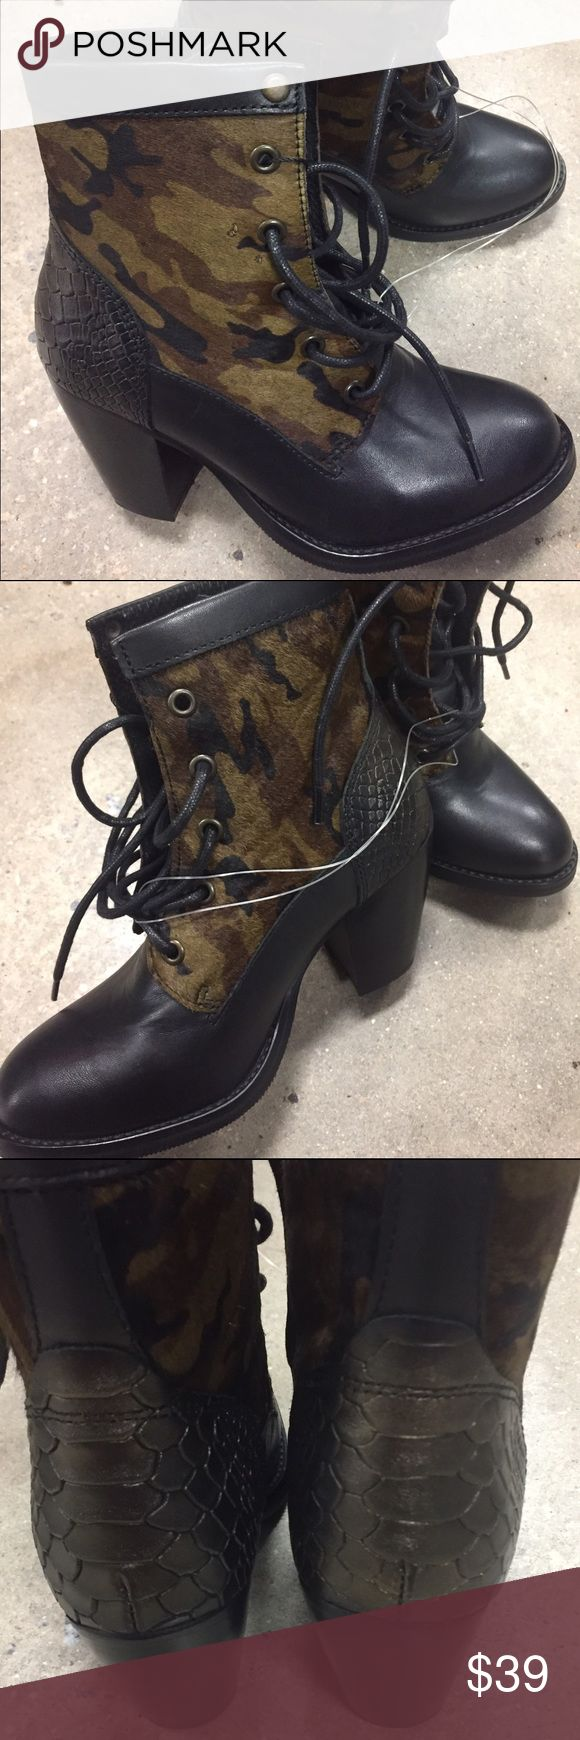 """✅SALE✅👠NEW BRONX BOOTS SIZE 6 👠GREAT GIFT👠 ✅SALE✅👠NEW BRONX BOOTS SIZE 6 HEEL HEIGHT 3"""" 👠GREAT GIFT👠BUNDLE AND SAVE 👠 BRONX Shoes Heeled Boots"""